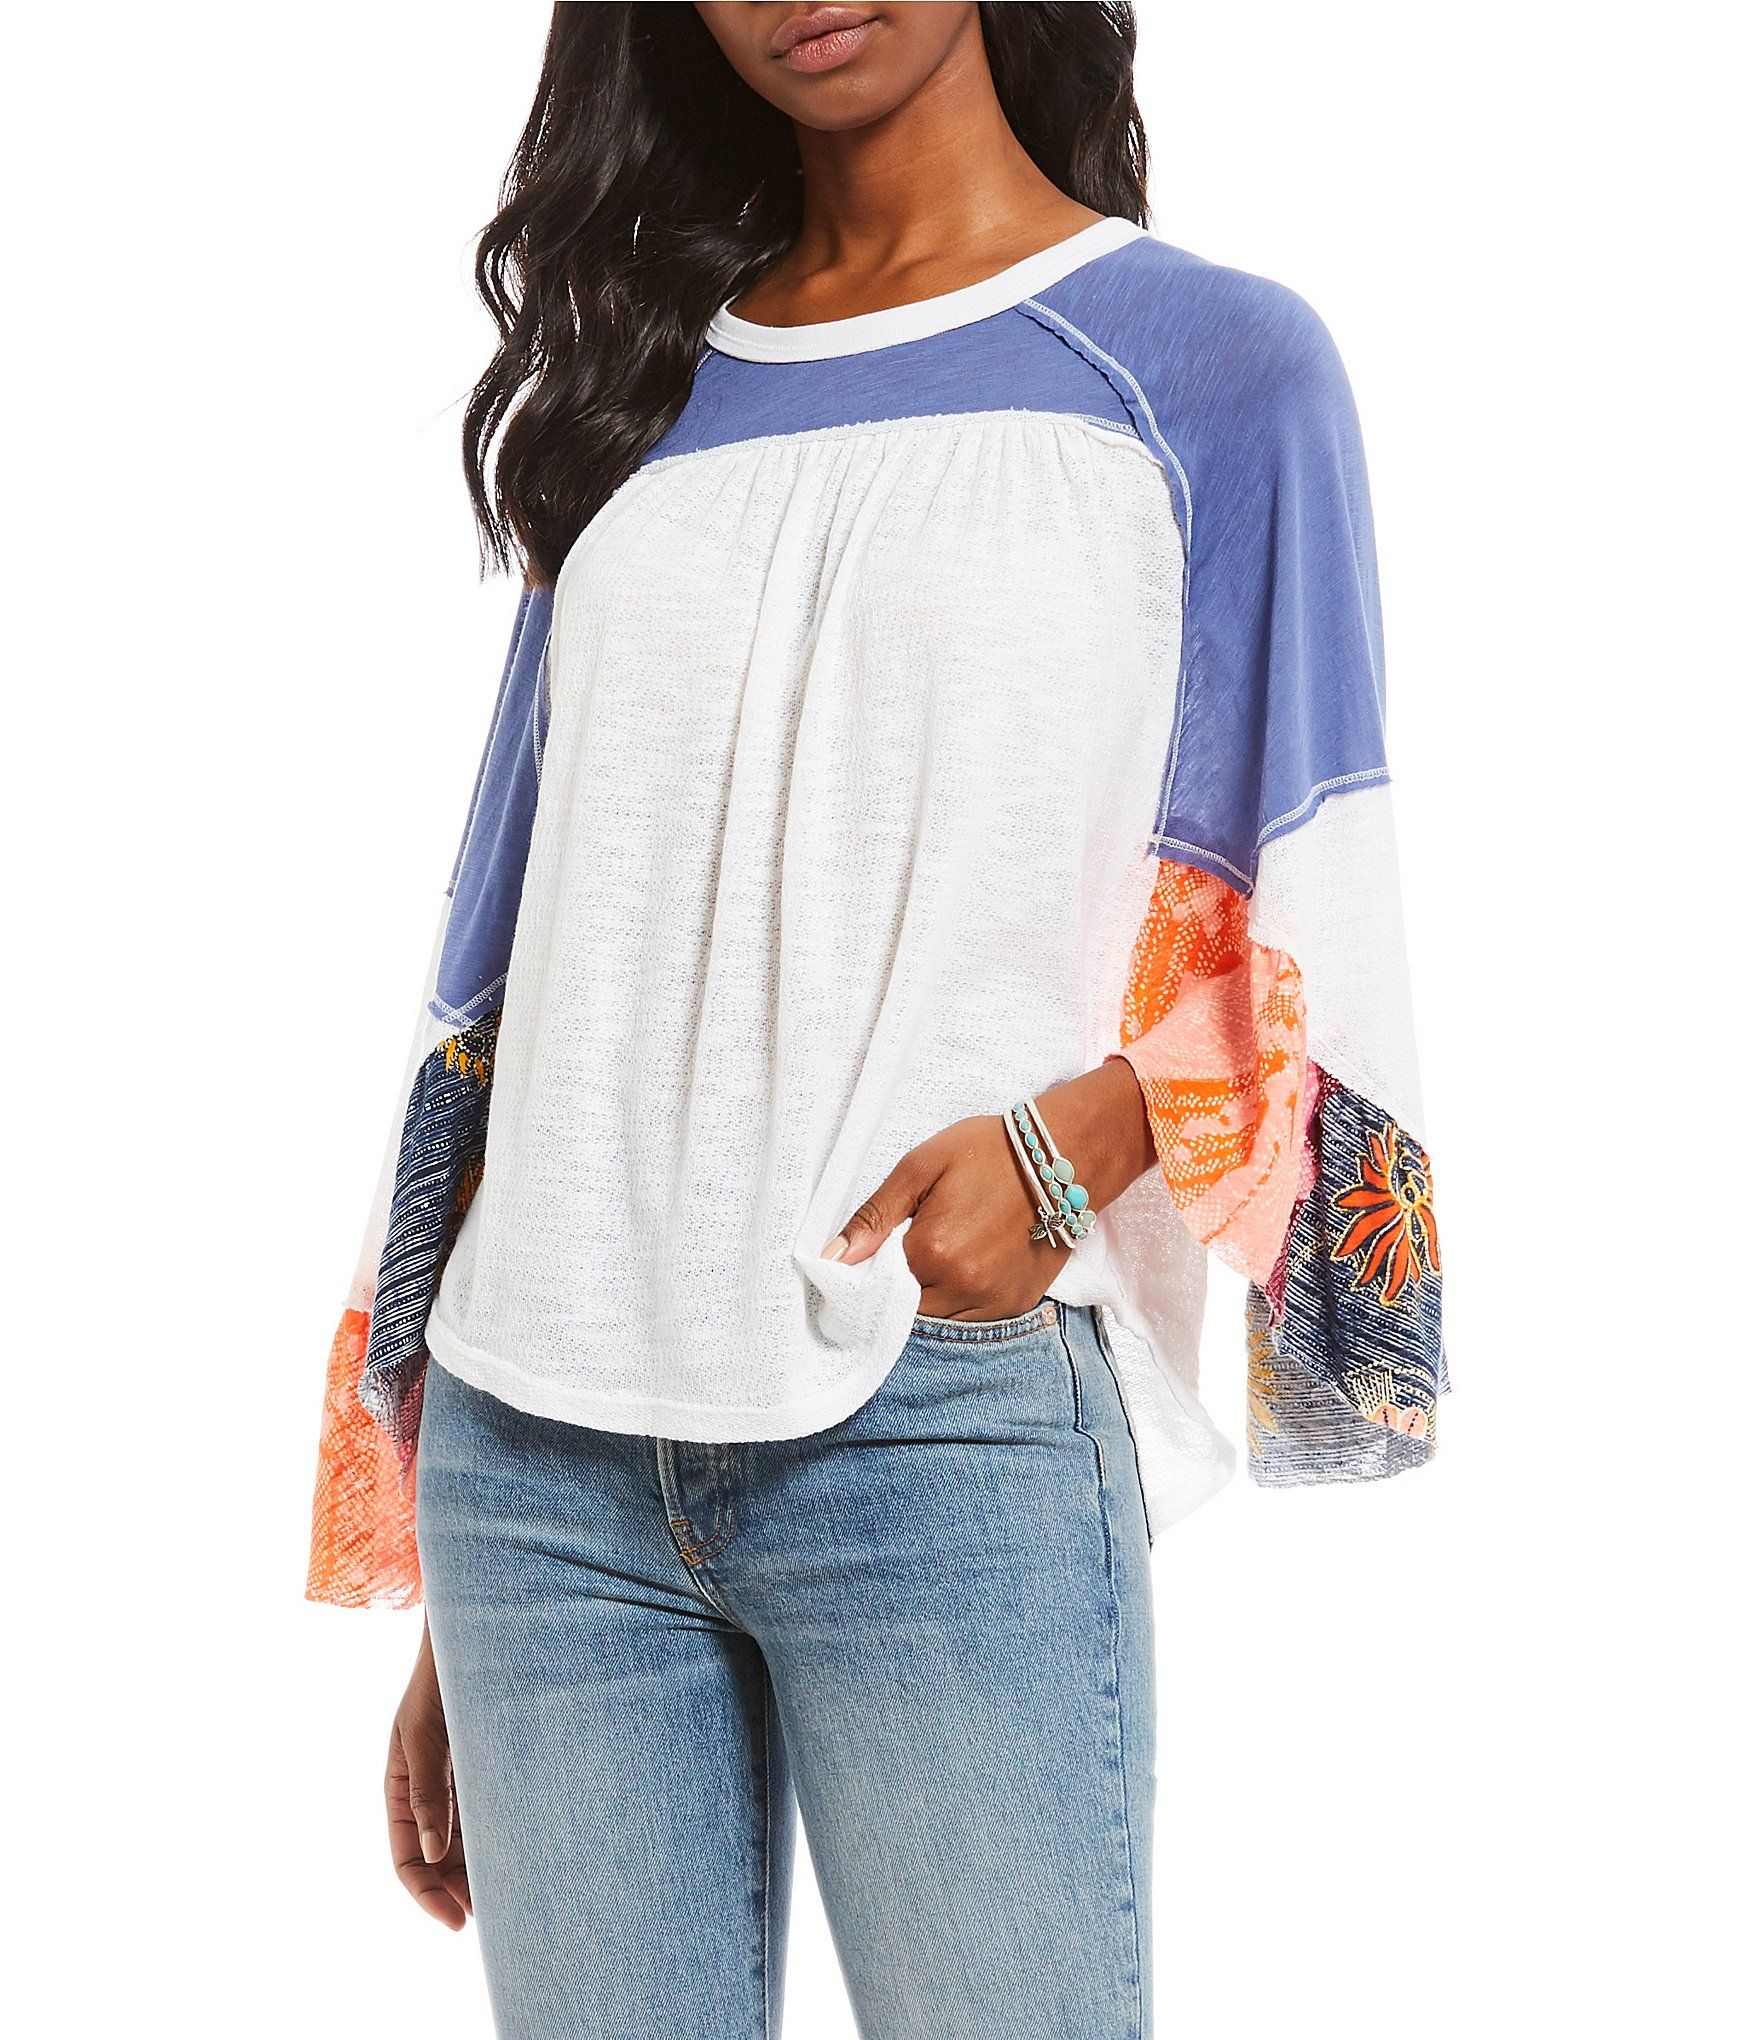 9d170255d5e Shop for Free People Friday Fever Flutter Sleeve Top at Dillards.com. Visit  Dillards.com to find clothing